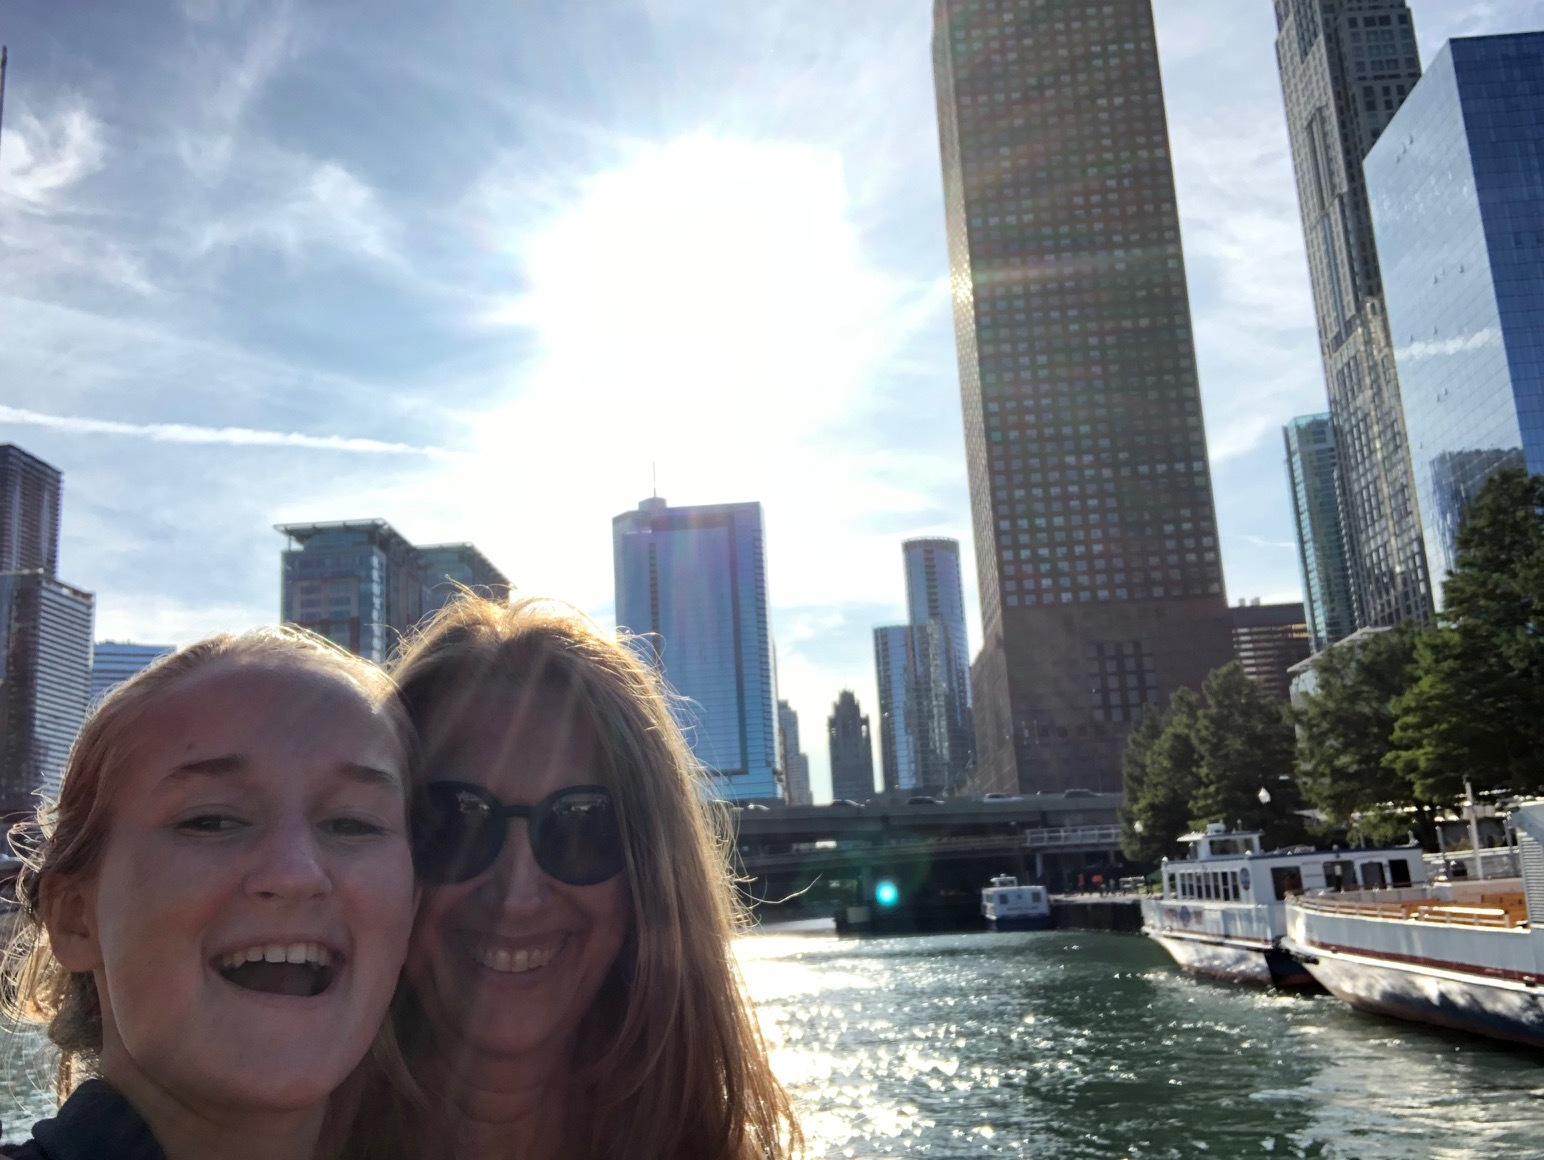 A snap from last weekend's trip to Chicago for my daughter Sophie's birthday!